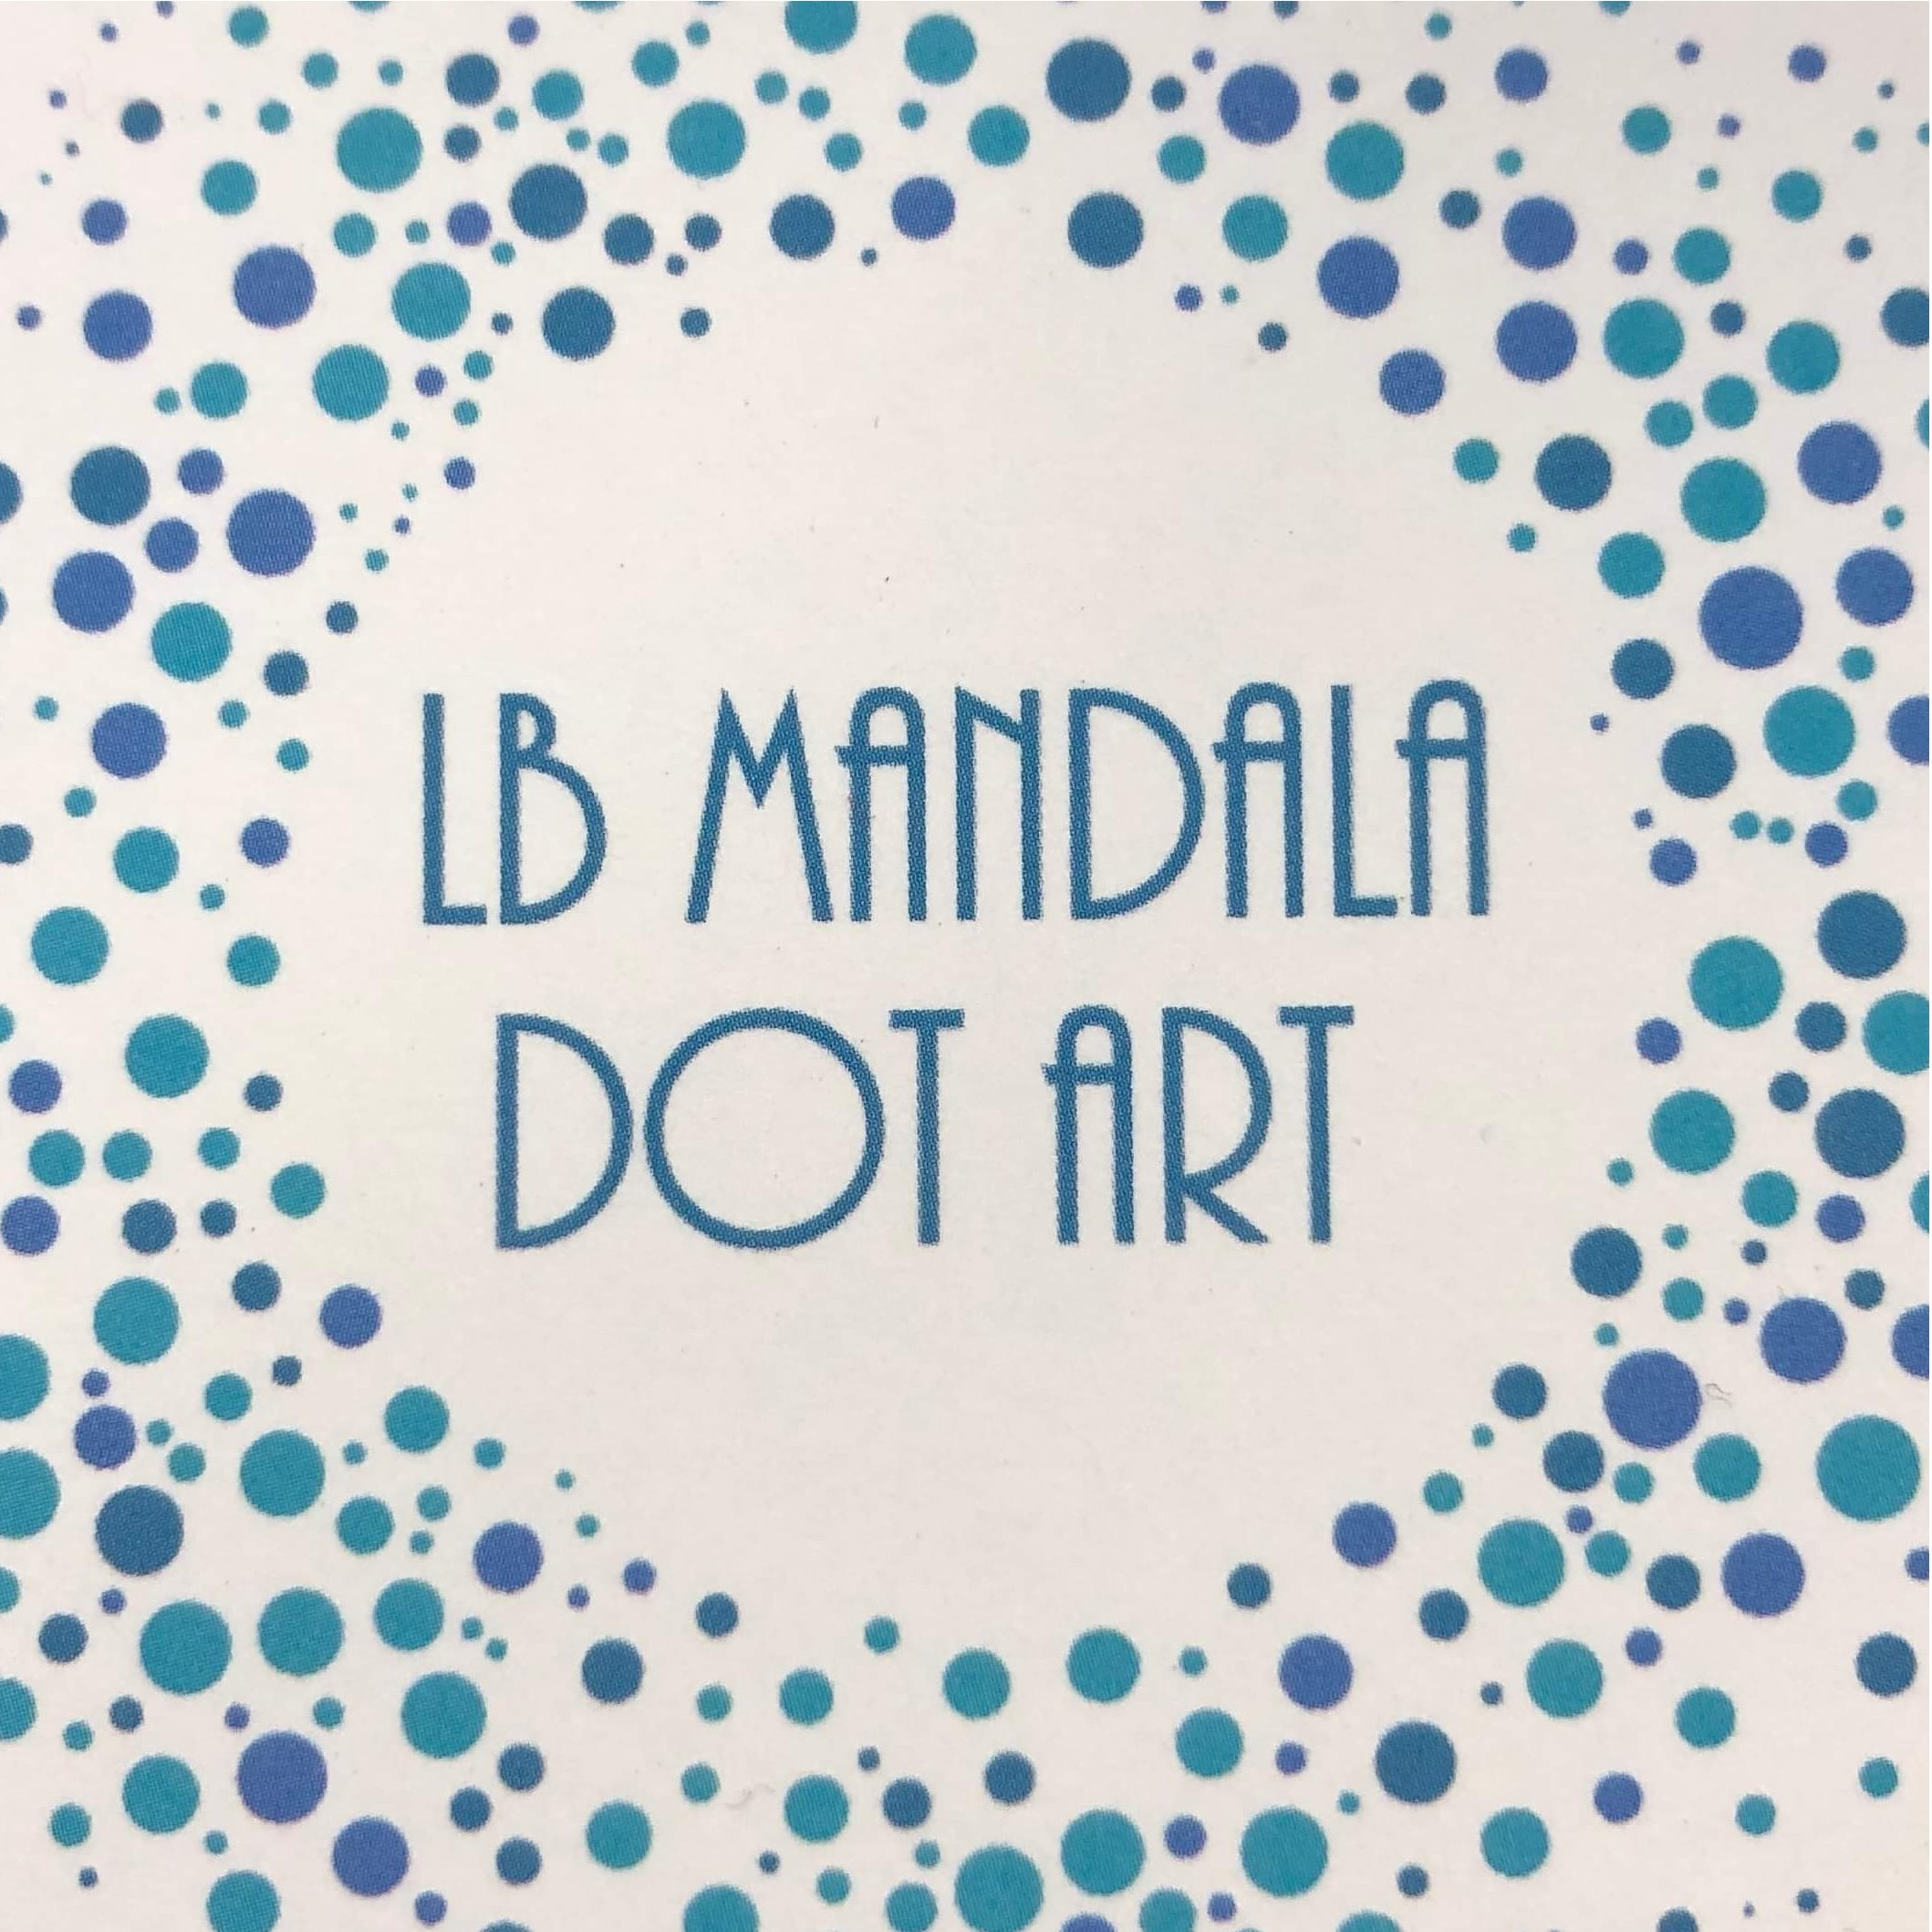 LB Mandala Dot Art